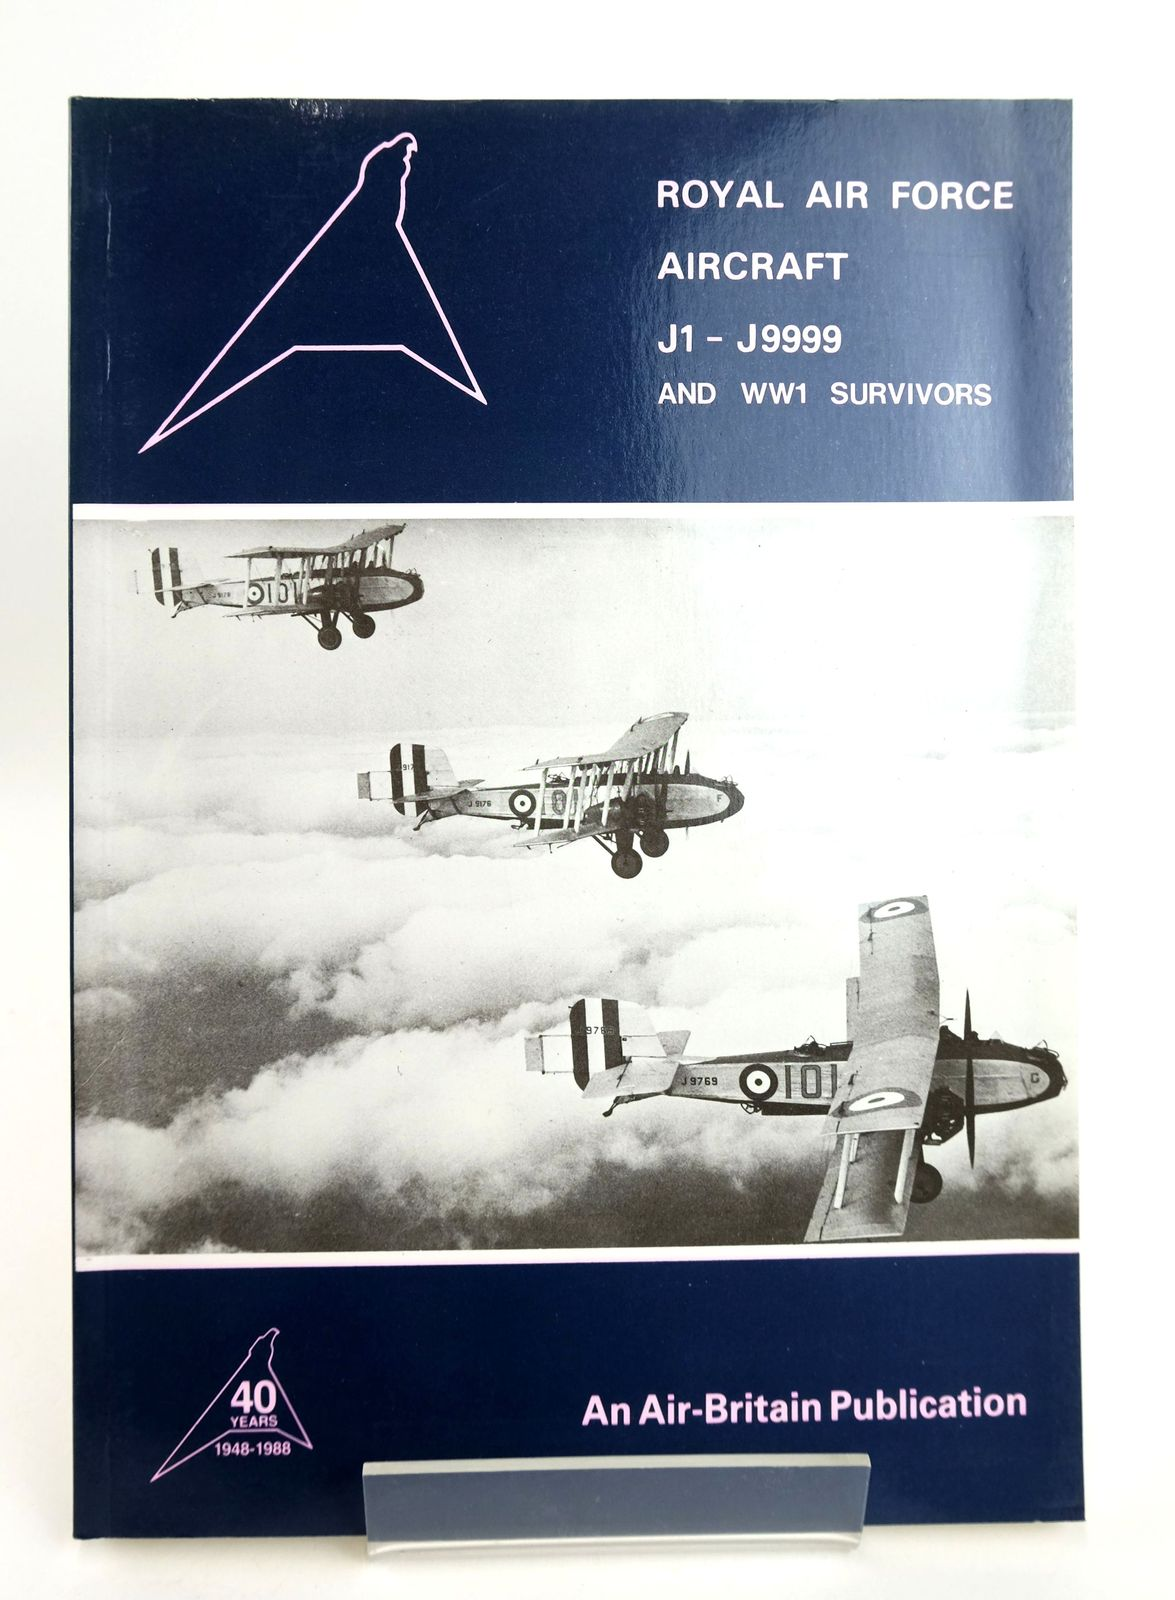 Photo of ROYAL AIR FORCE AIRCRAFT J1 - J9999 AND WW1 SURVIVORS written by Thompson, Dennis Sturtivant, Ray published by Air-Britain (Historians) Ltd. (STOCK CODE: 1819038)  for sale by Stella & Rose's Books